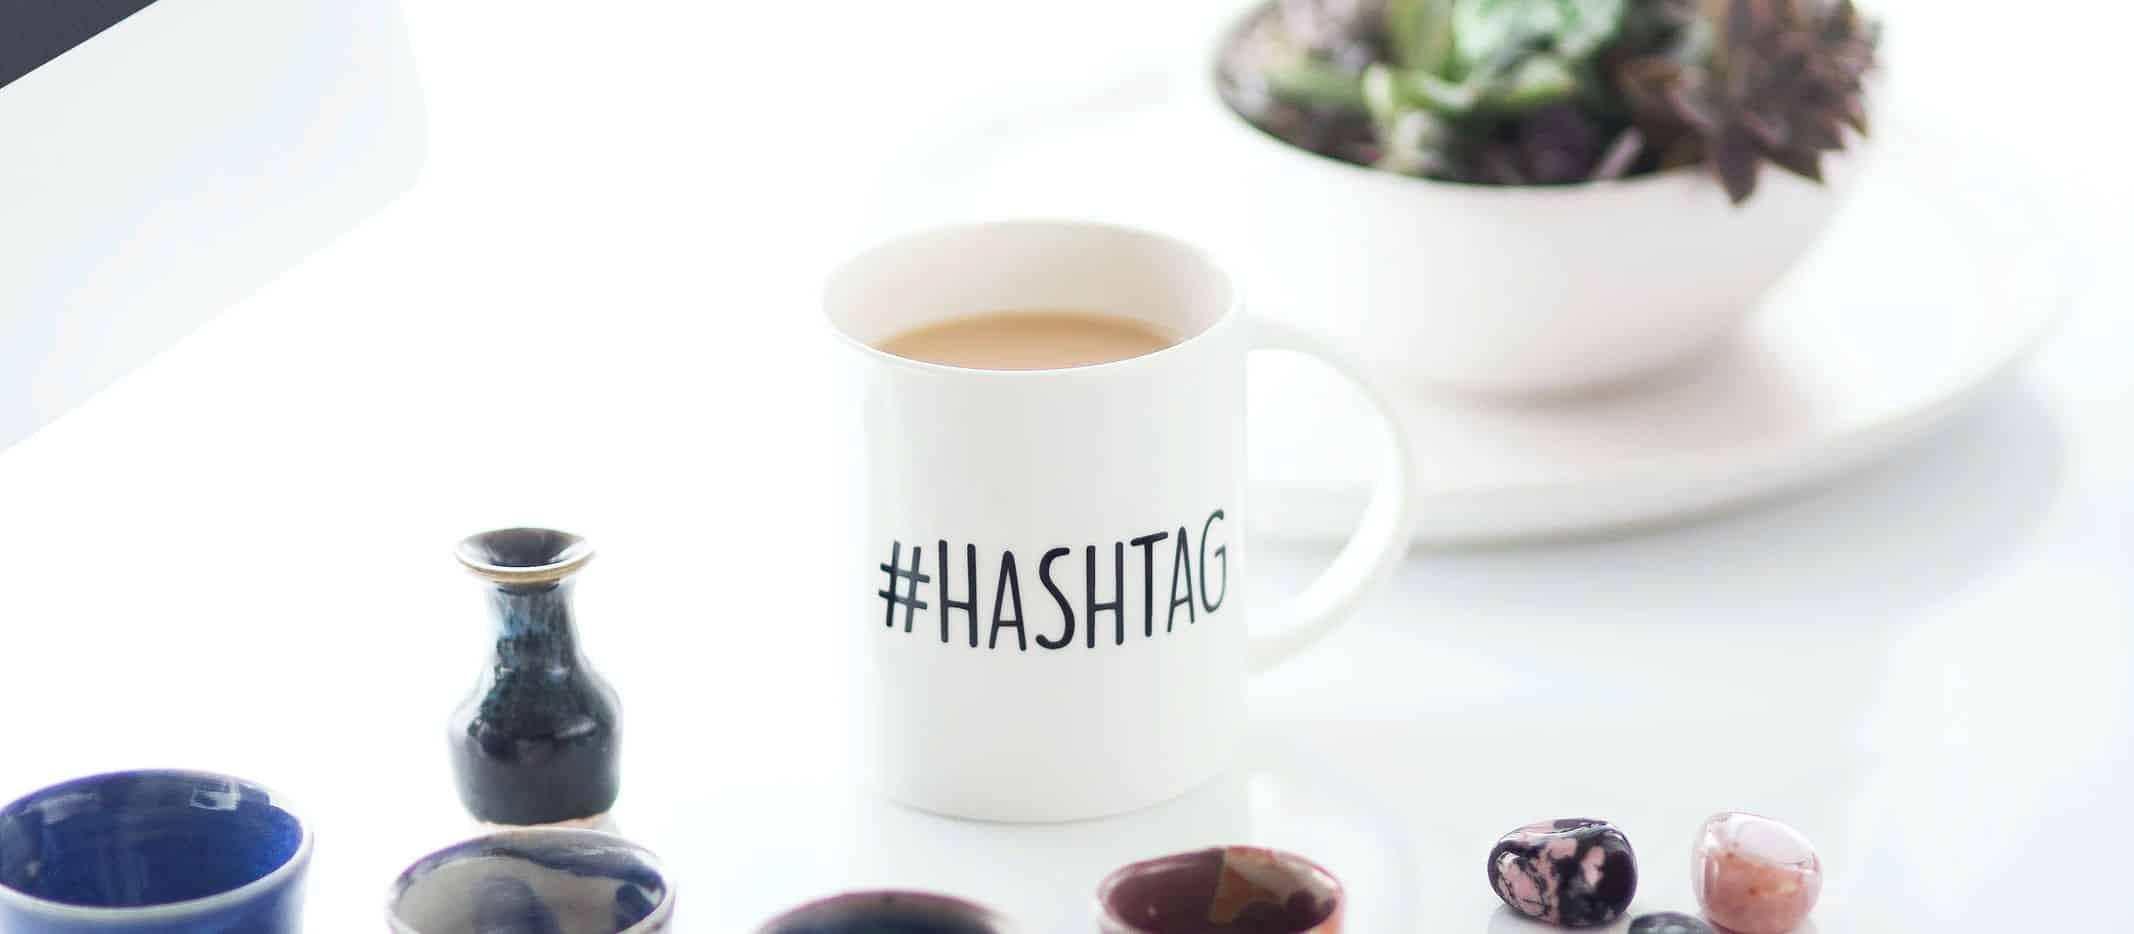 Hashtags can plan an important role in your Twitter conversations if you know how to use them properly